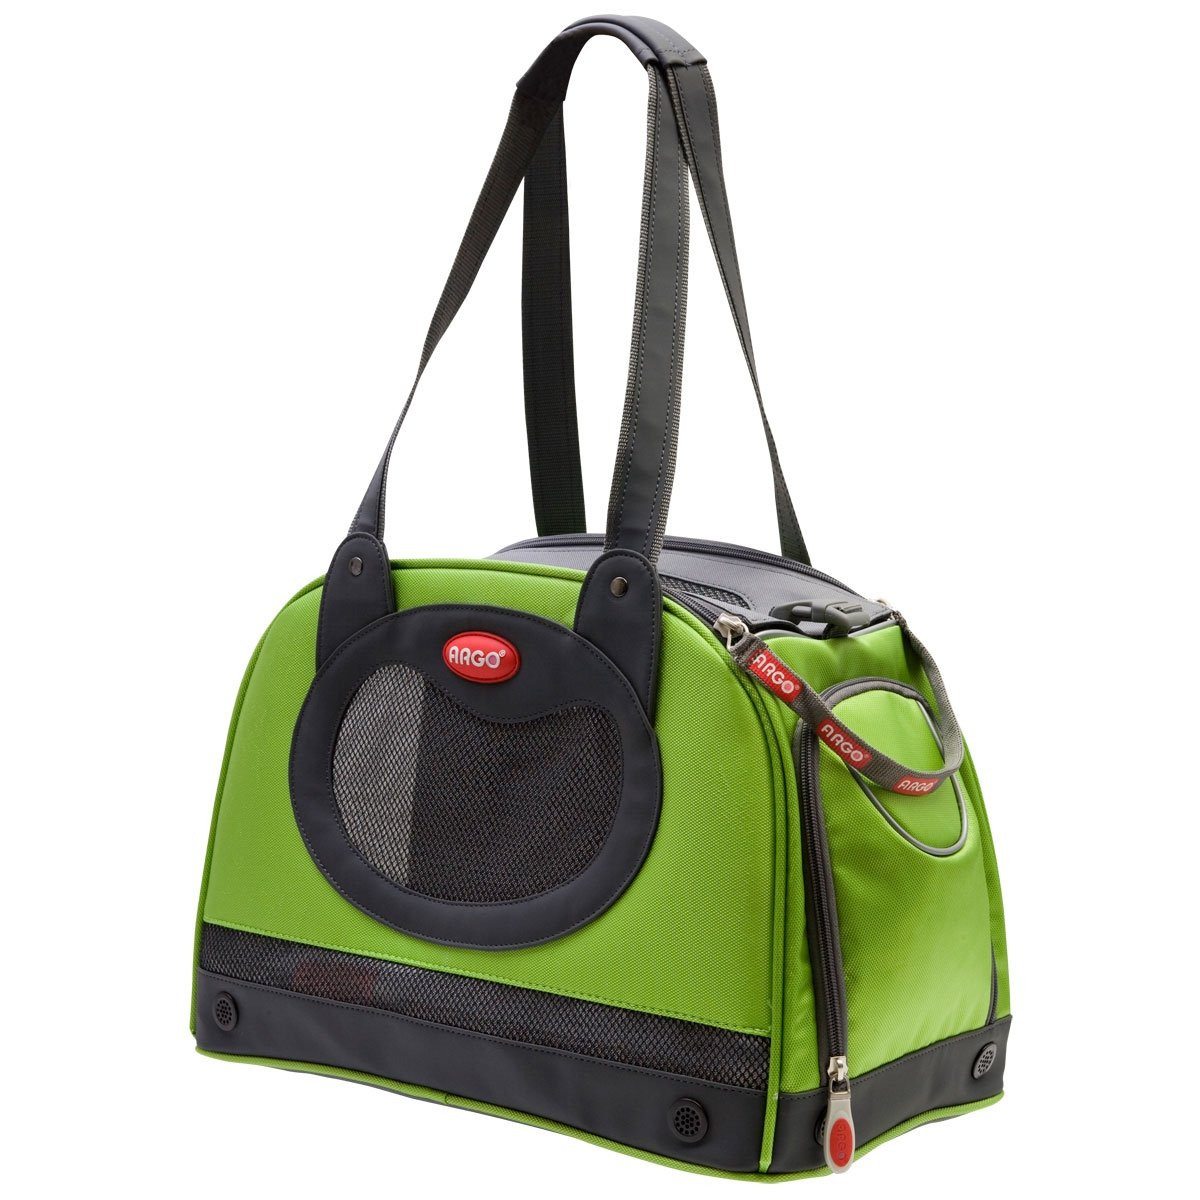 Argo by Teafco Petaboard Style B Airline Approved Pet Carrier, Kiwi Green, Medium by Teafco